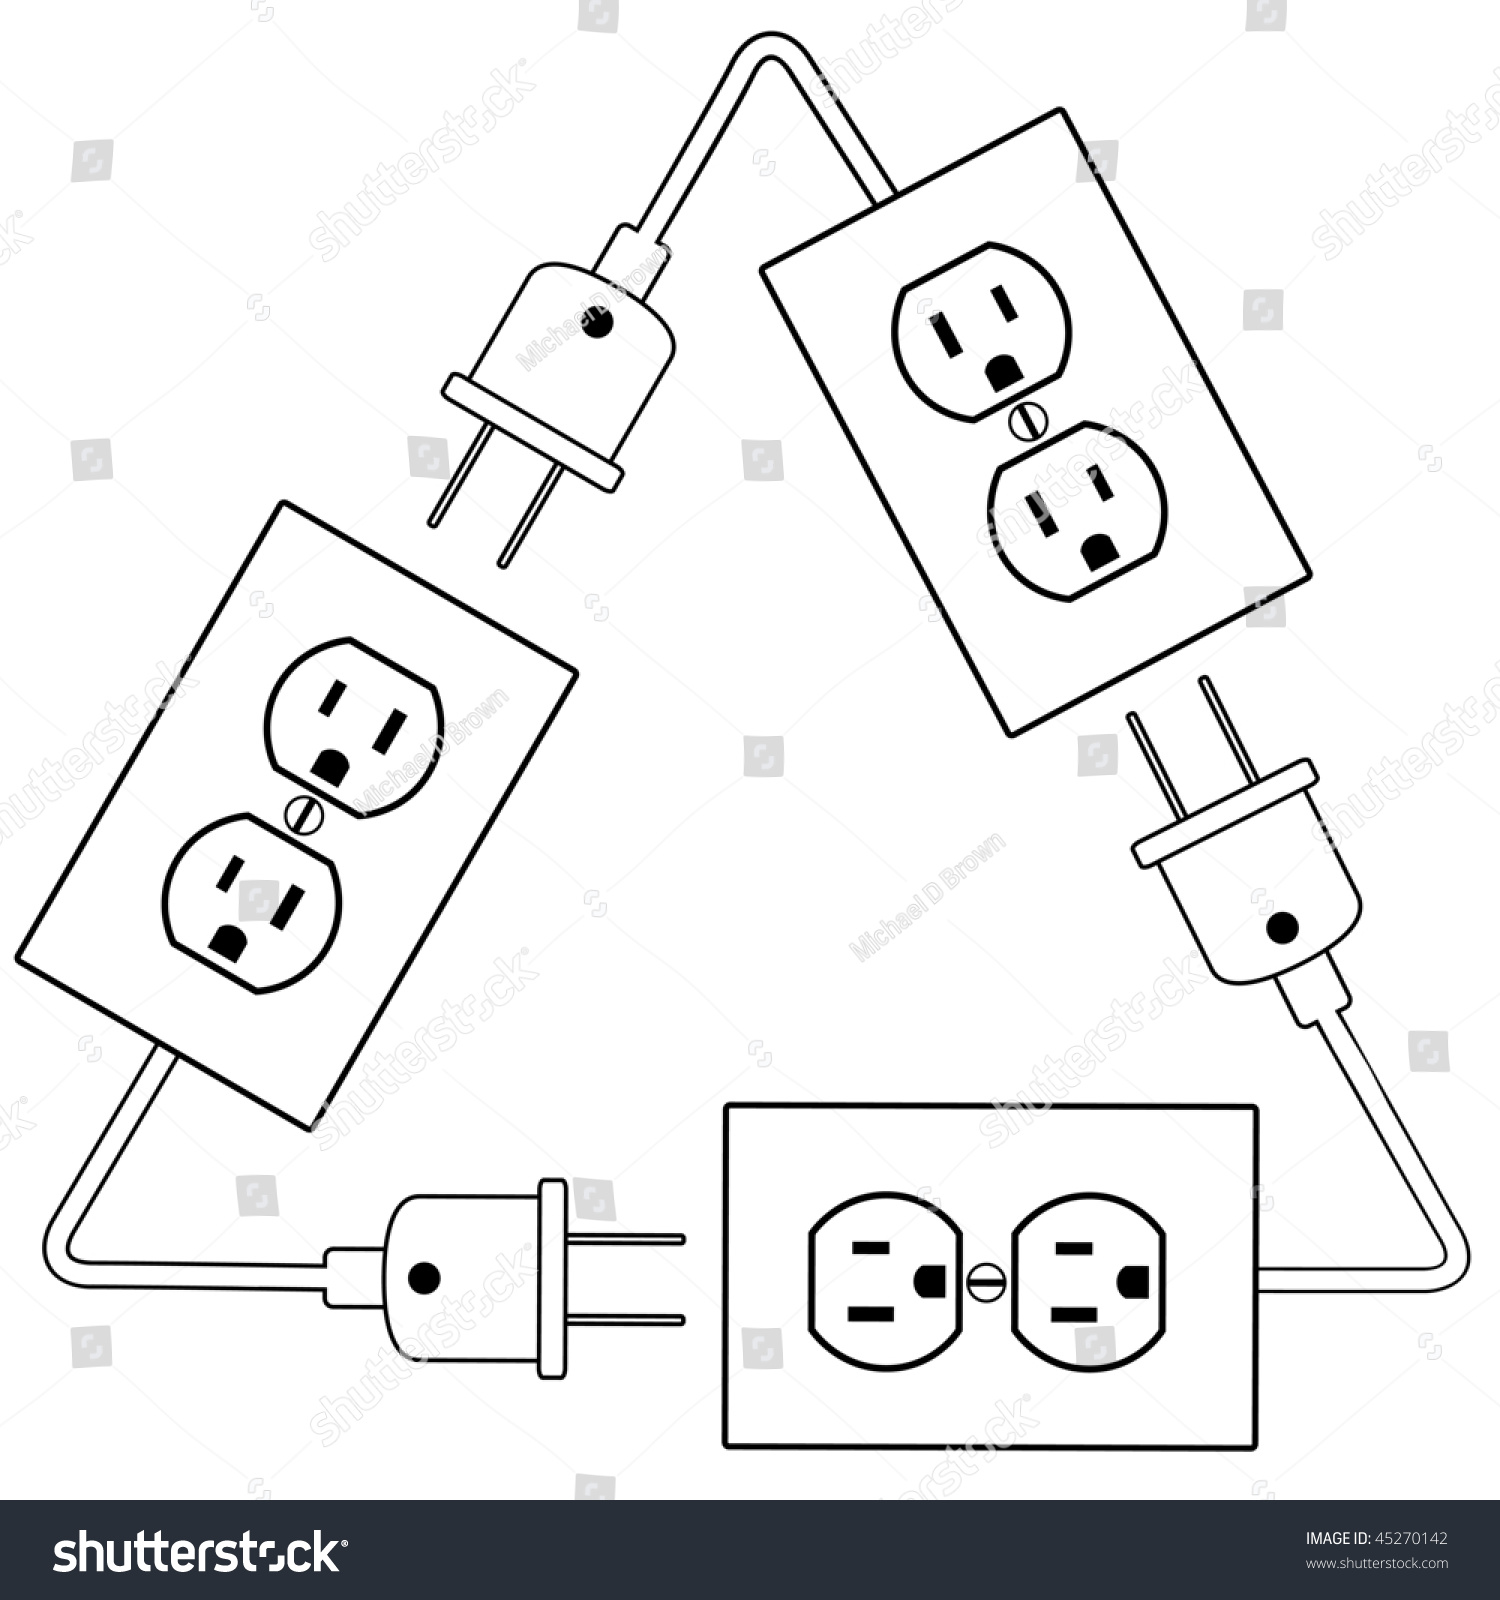 Symbol For Electrical Outlet